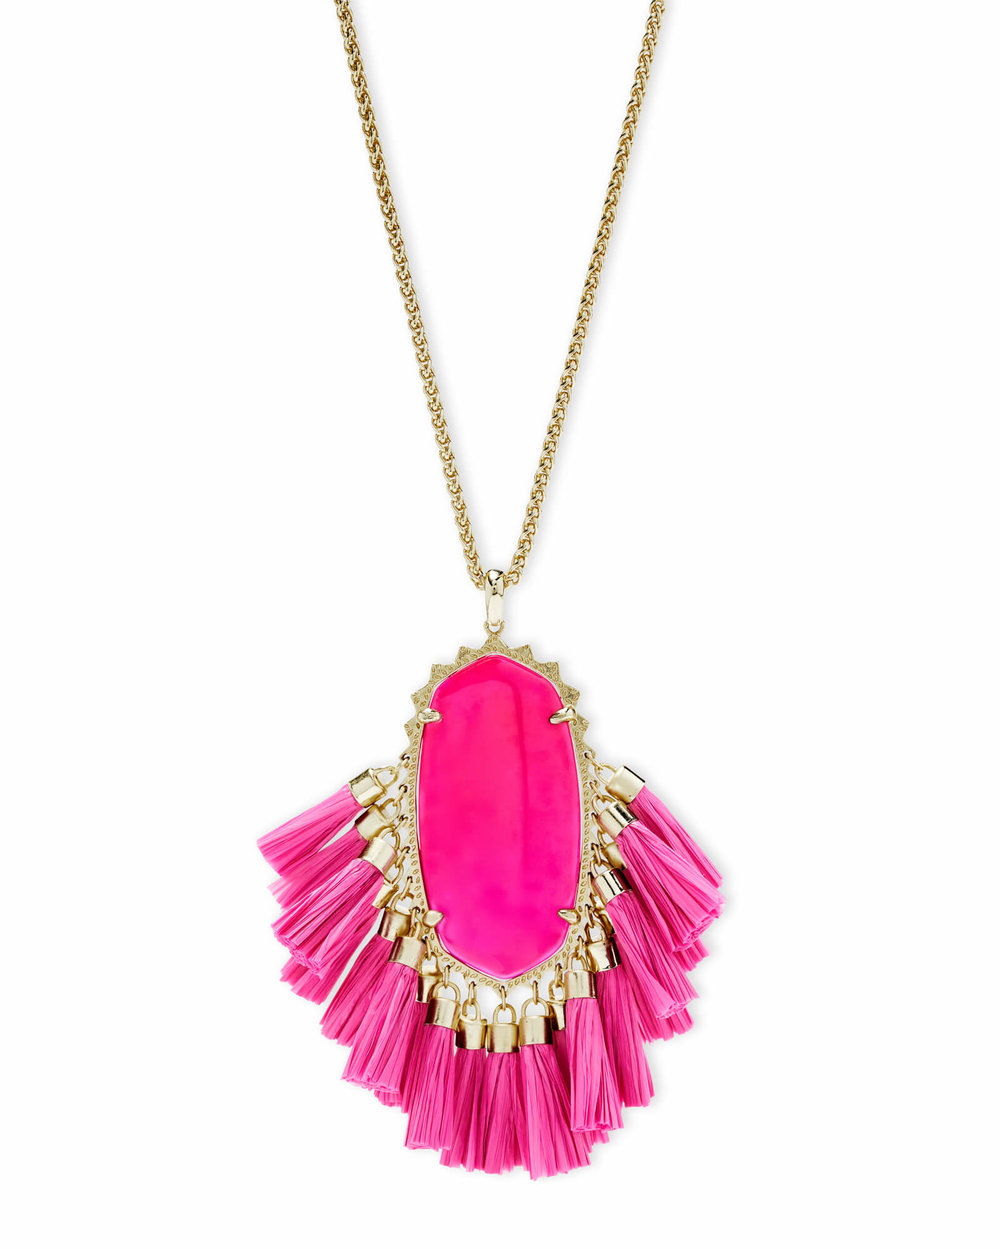 kendra-scott-betsy-gold-long-pendant-necklace-in-pink-agate_00_default_lg.jpg